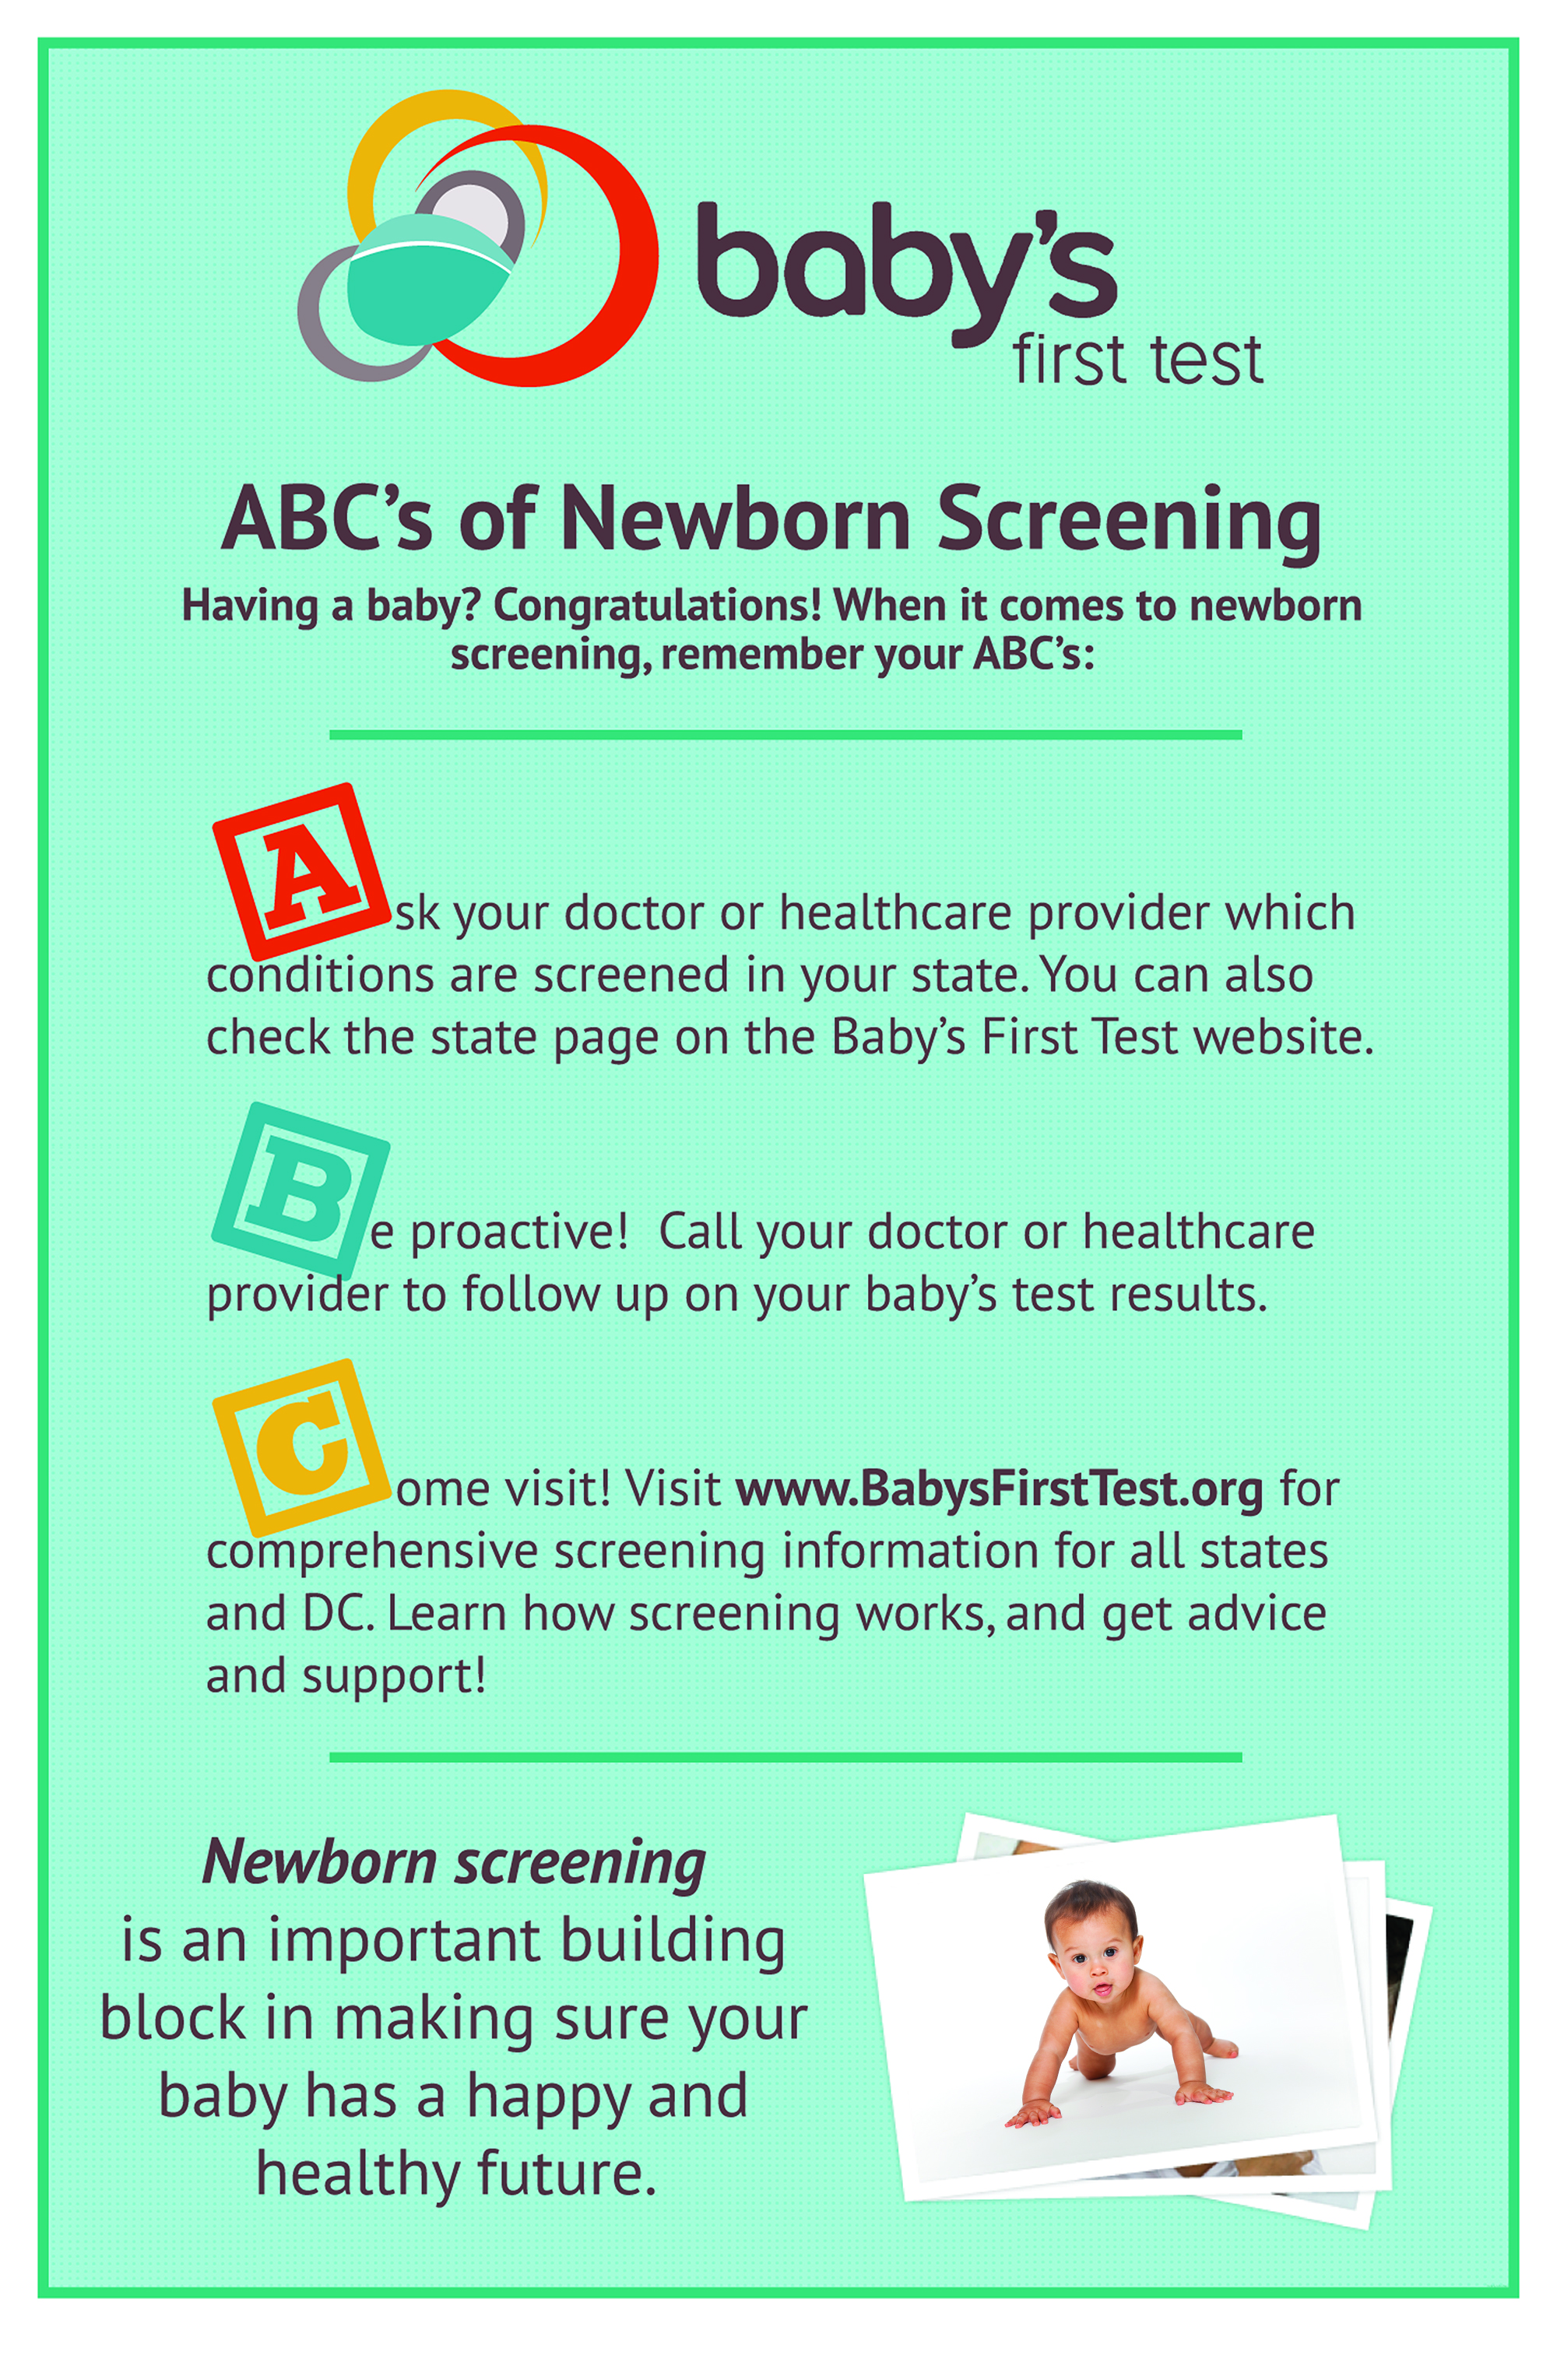 abcs of newborn screening